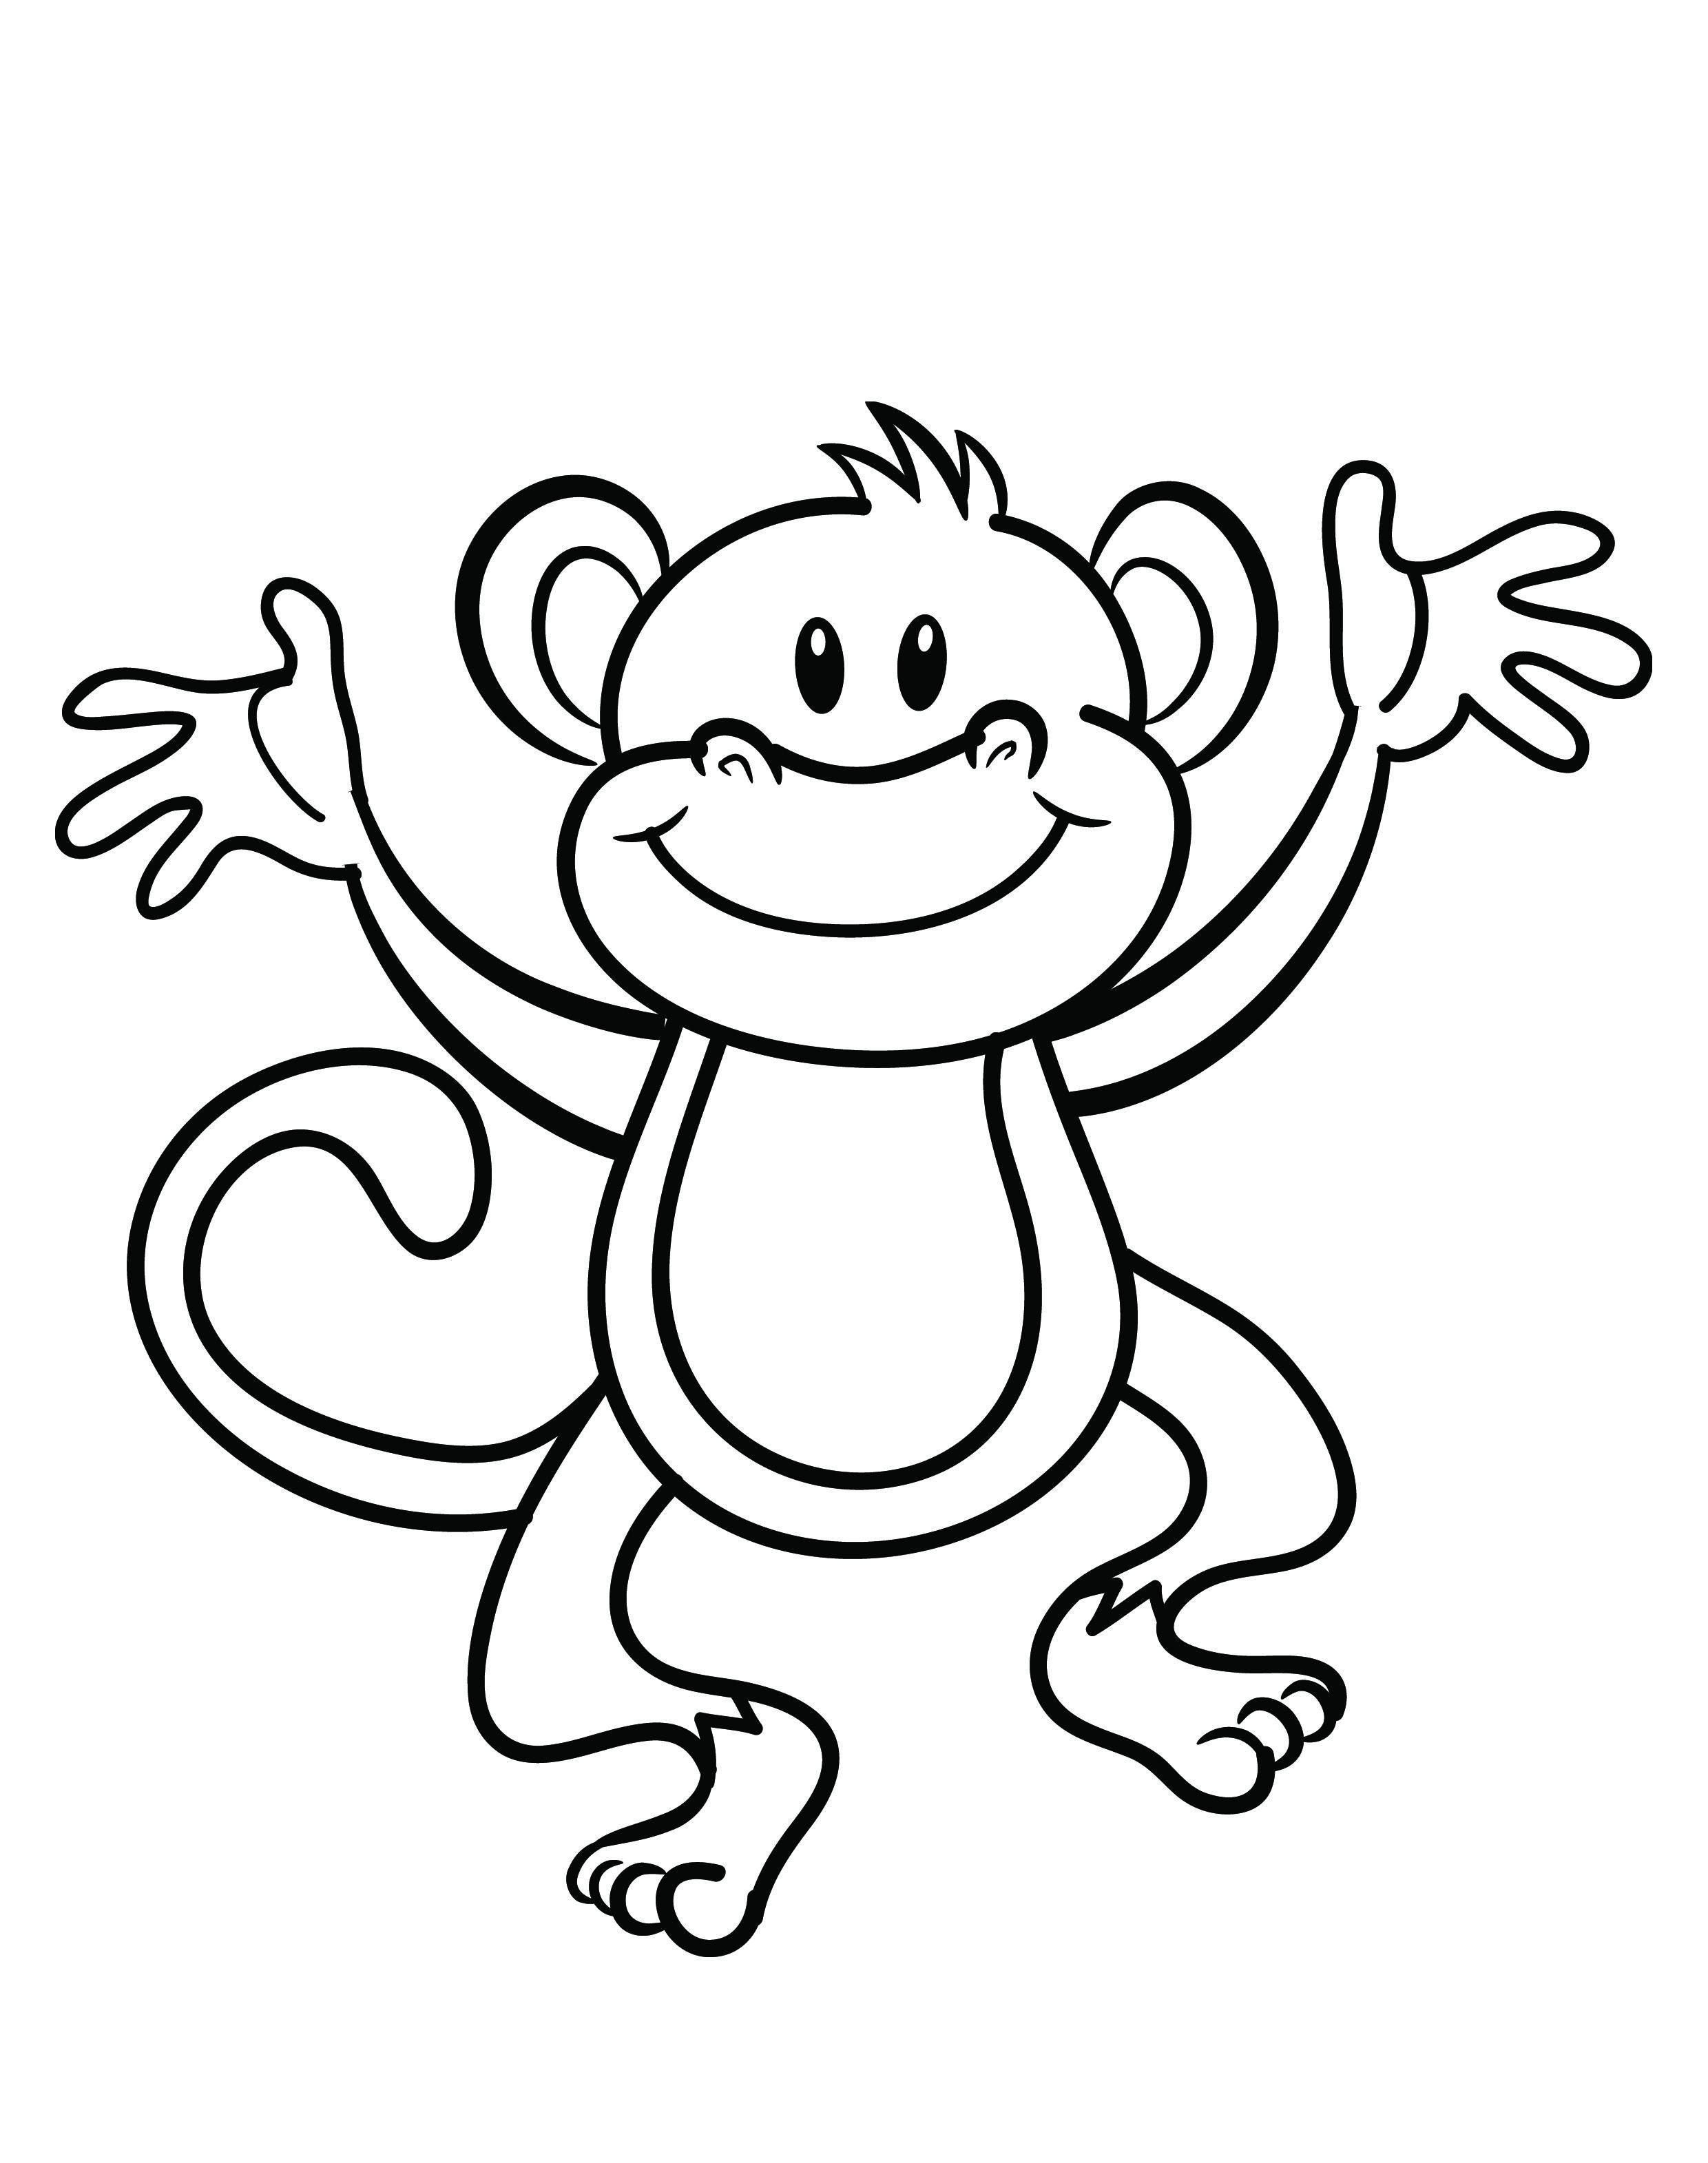 coloring pages monkey Free printable monkey coloring page | cj 1st birthday | Pinterest  coloring pages monkey